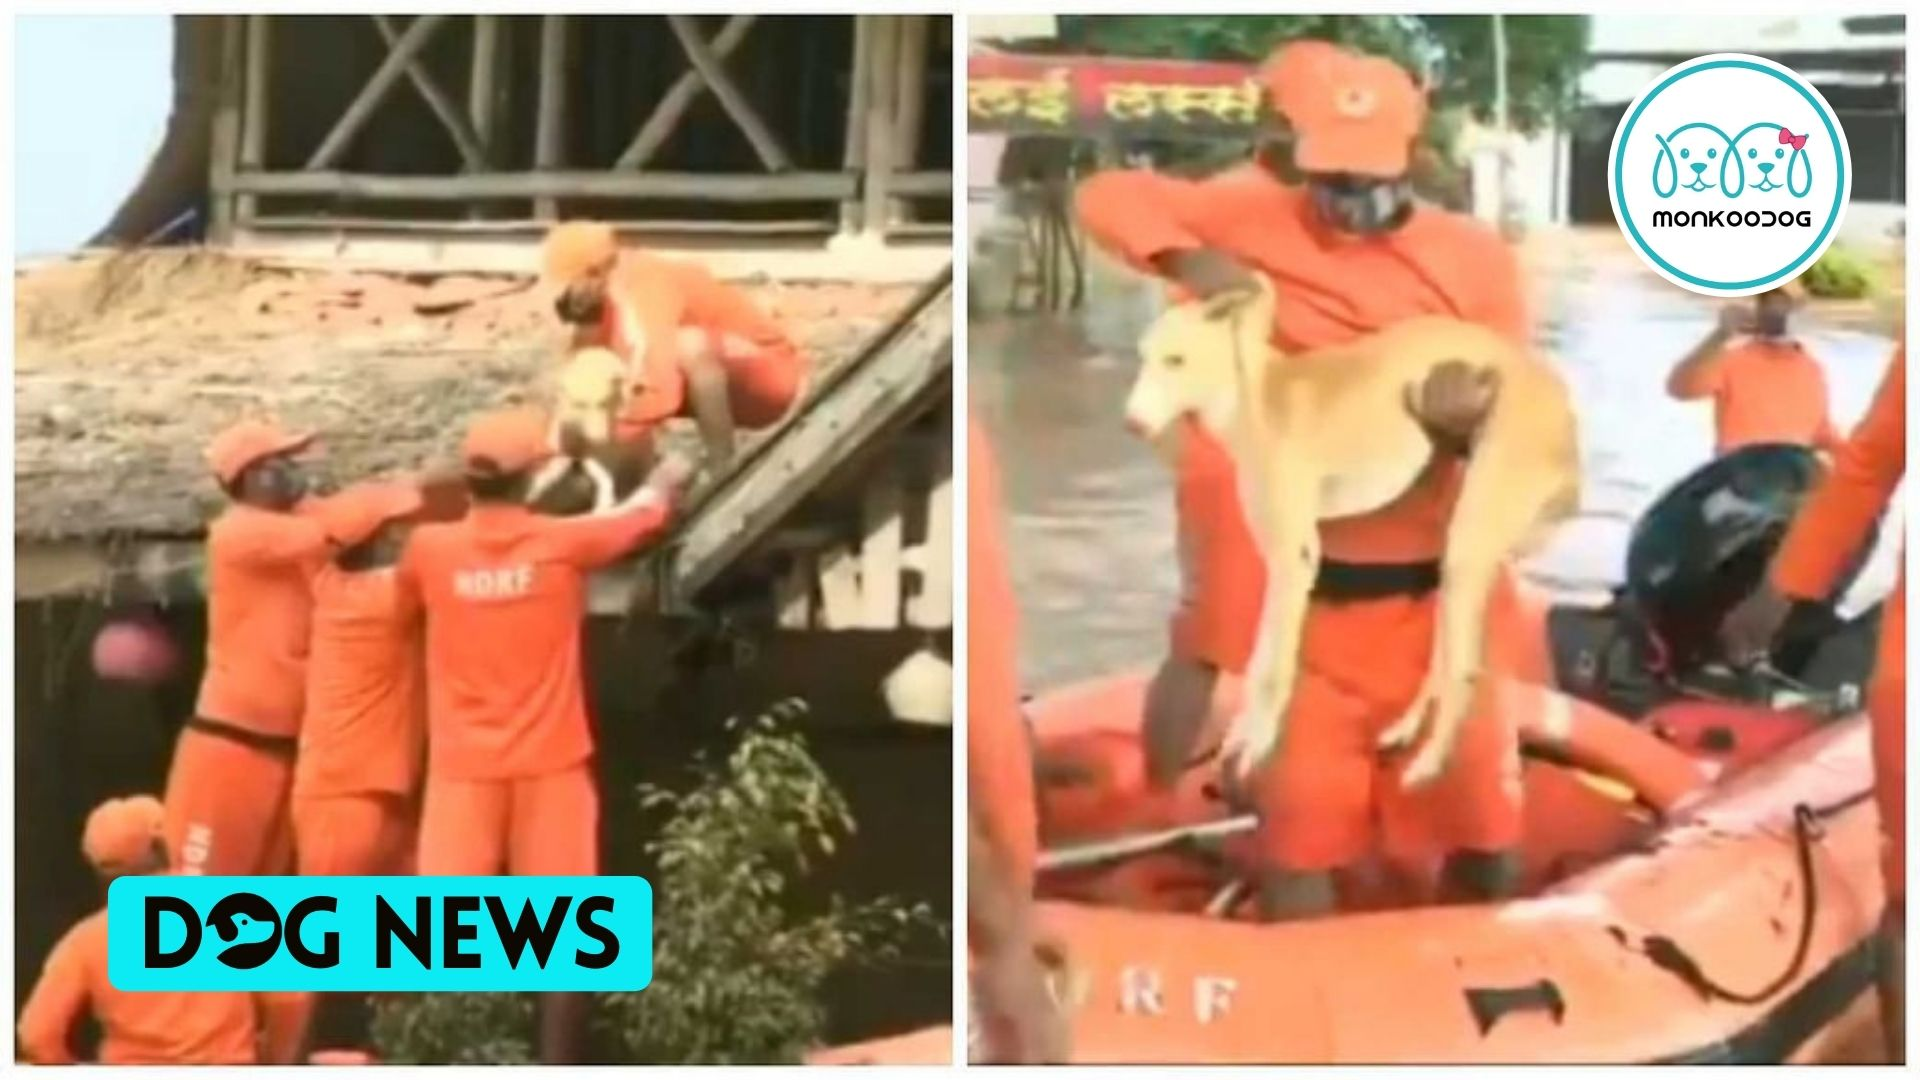 Dog saved by NDRF personnel from Maharashtra's destructive floodwaters. Watch the video.